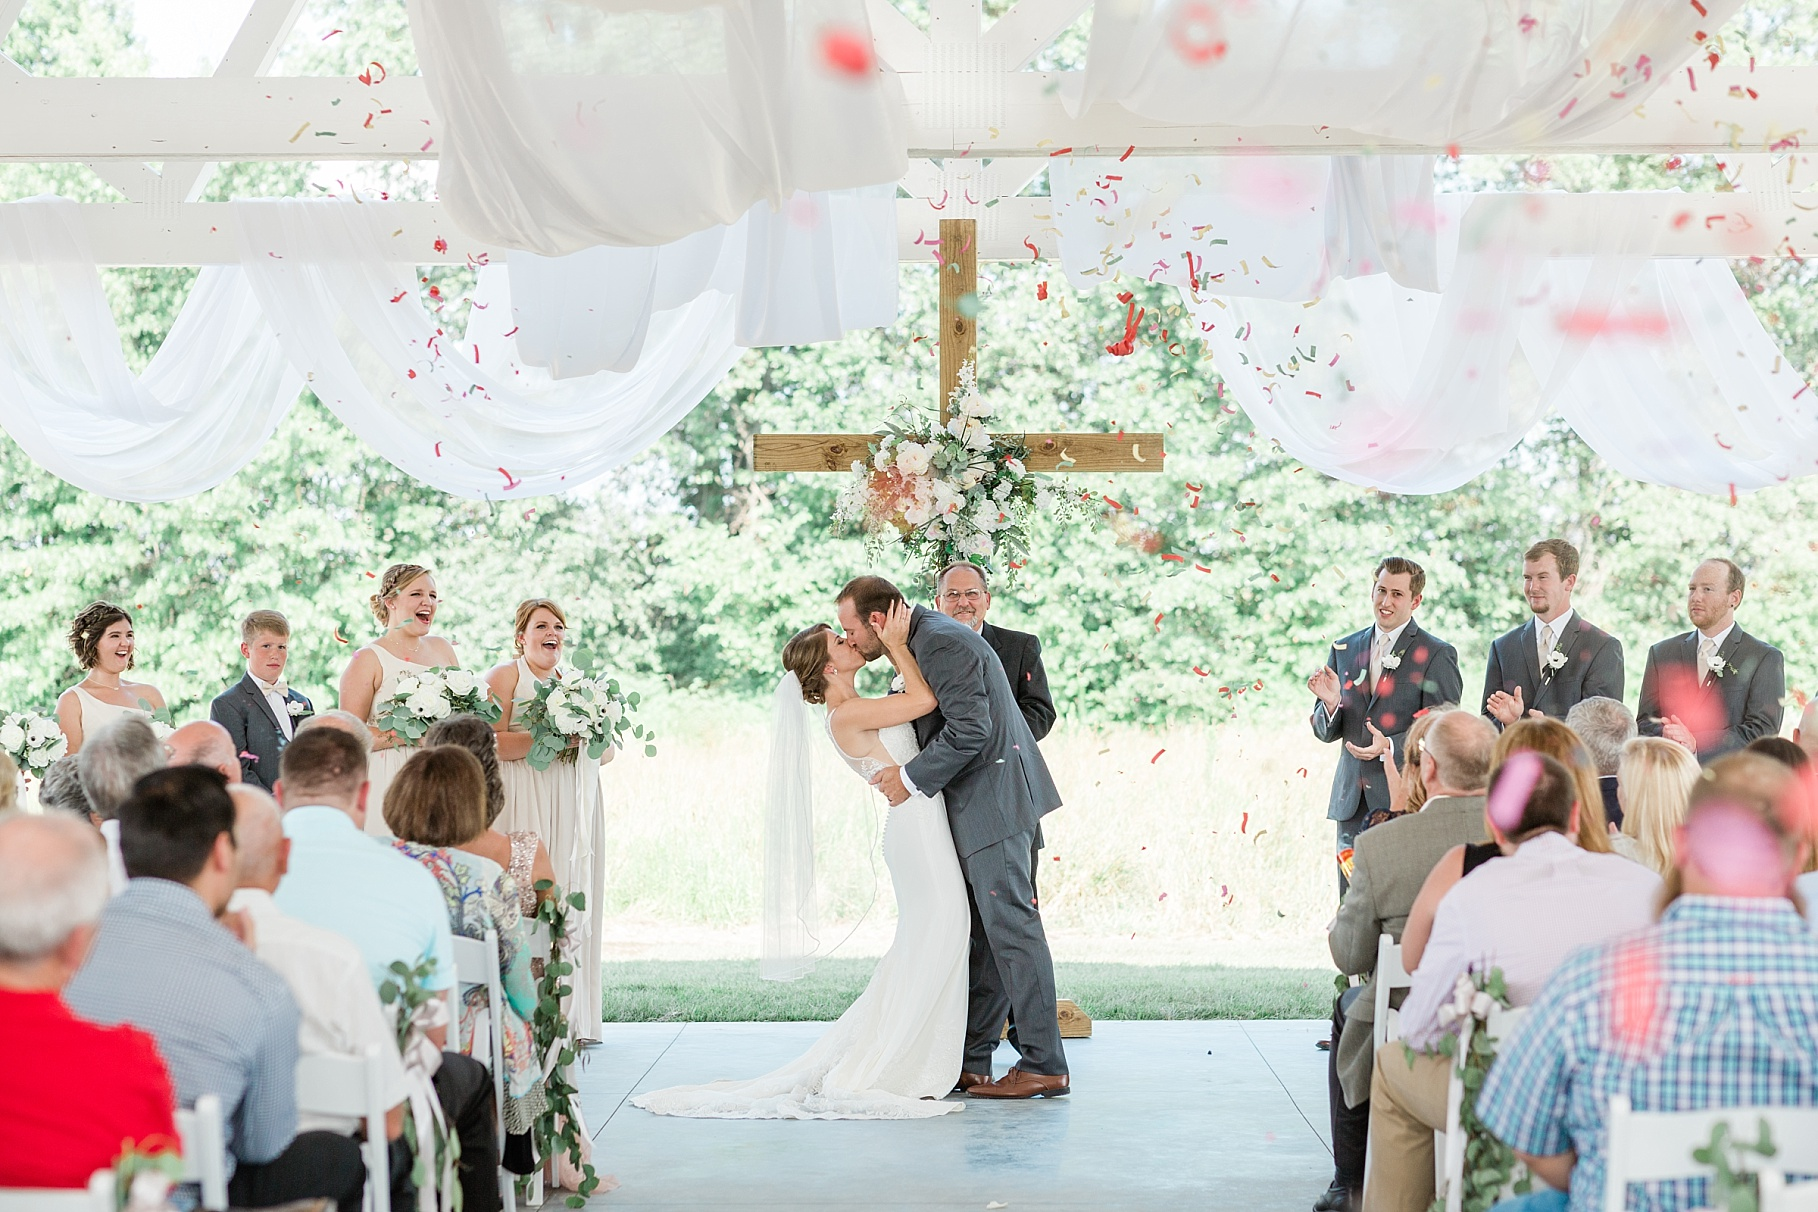 Wedding Ceremony with Confetti Pop at Emerson Fields Venue by Associate Wedding Photographer for Kelsi Kliethermes Photography Best Columbia Missouri and Maui Hawaii Wedding Photographer_0018.jpg